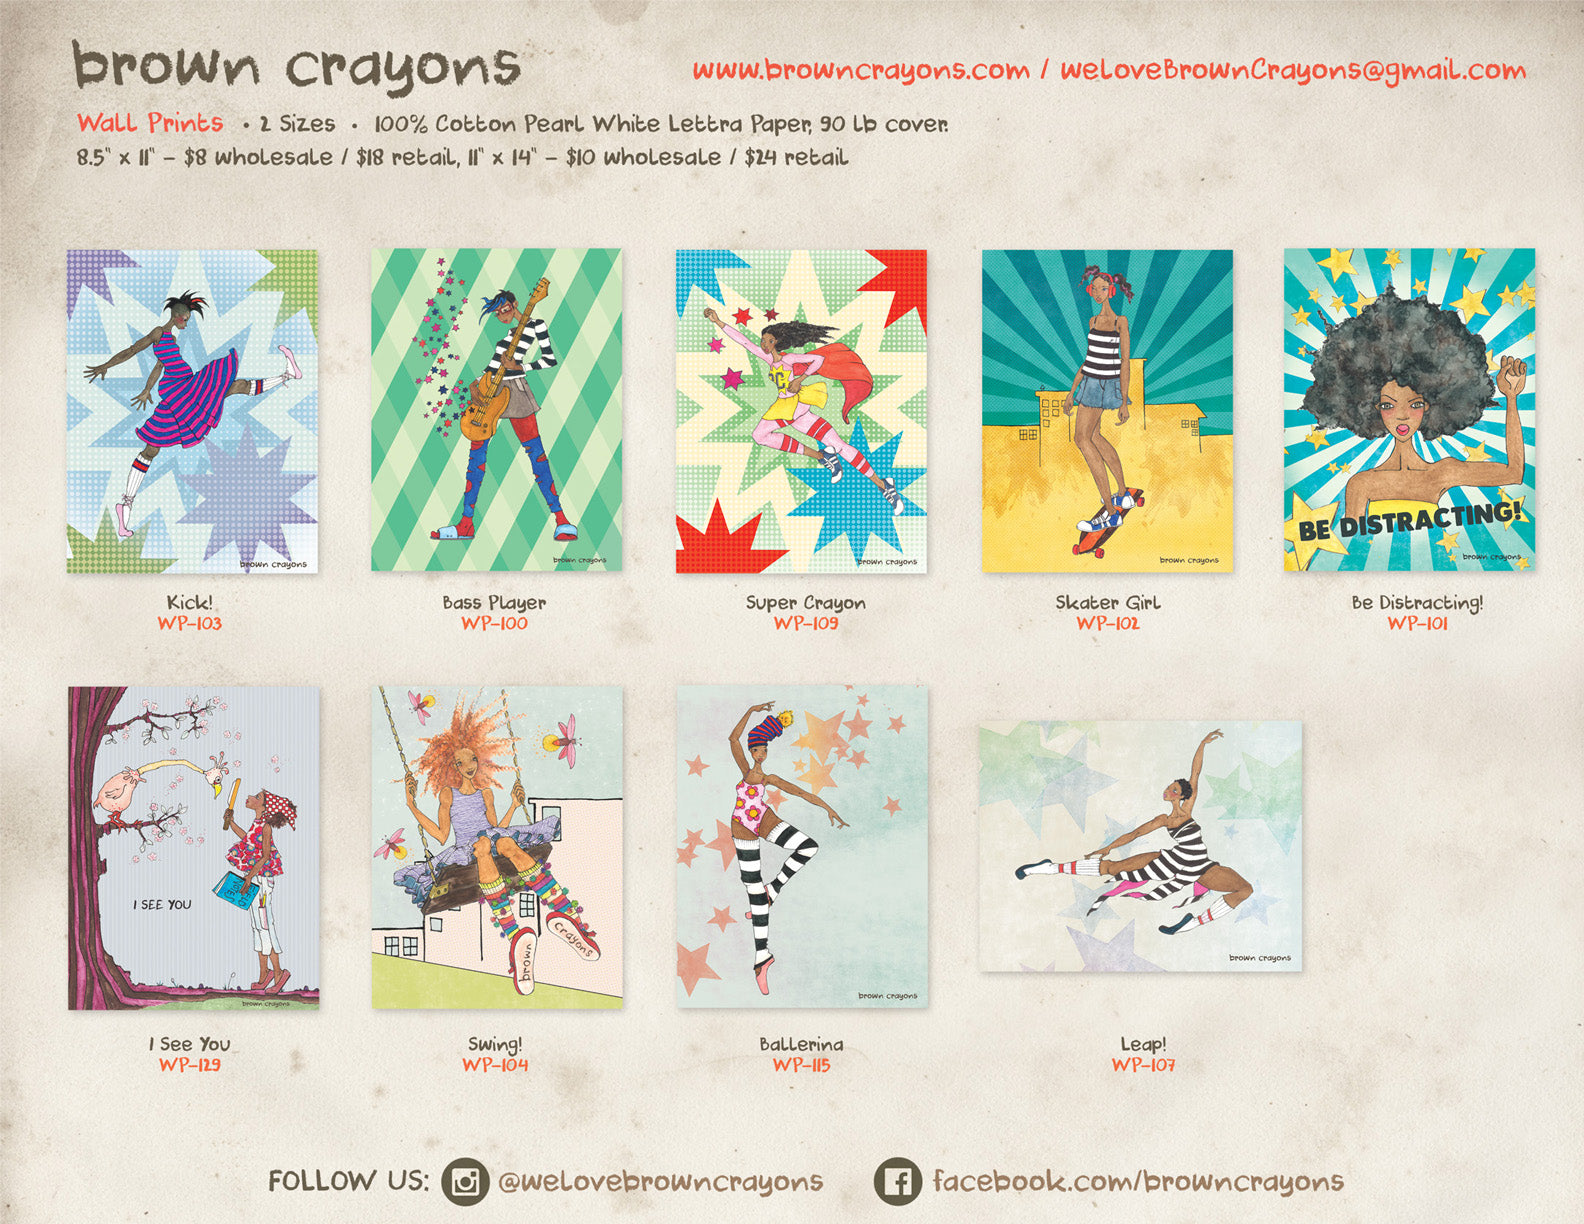 brown crayons wholesale line sheet - wall prints